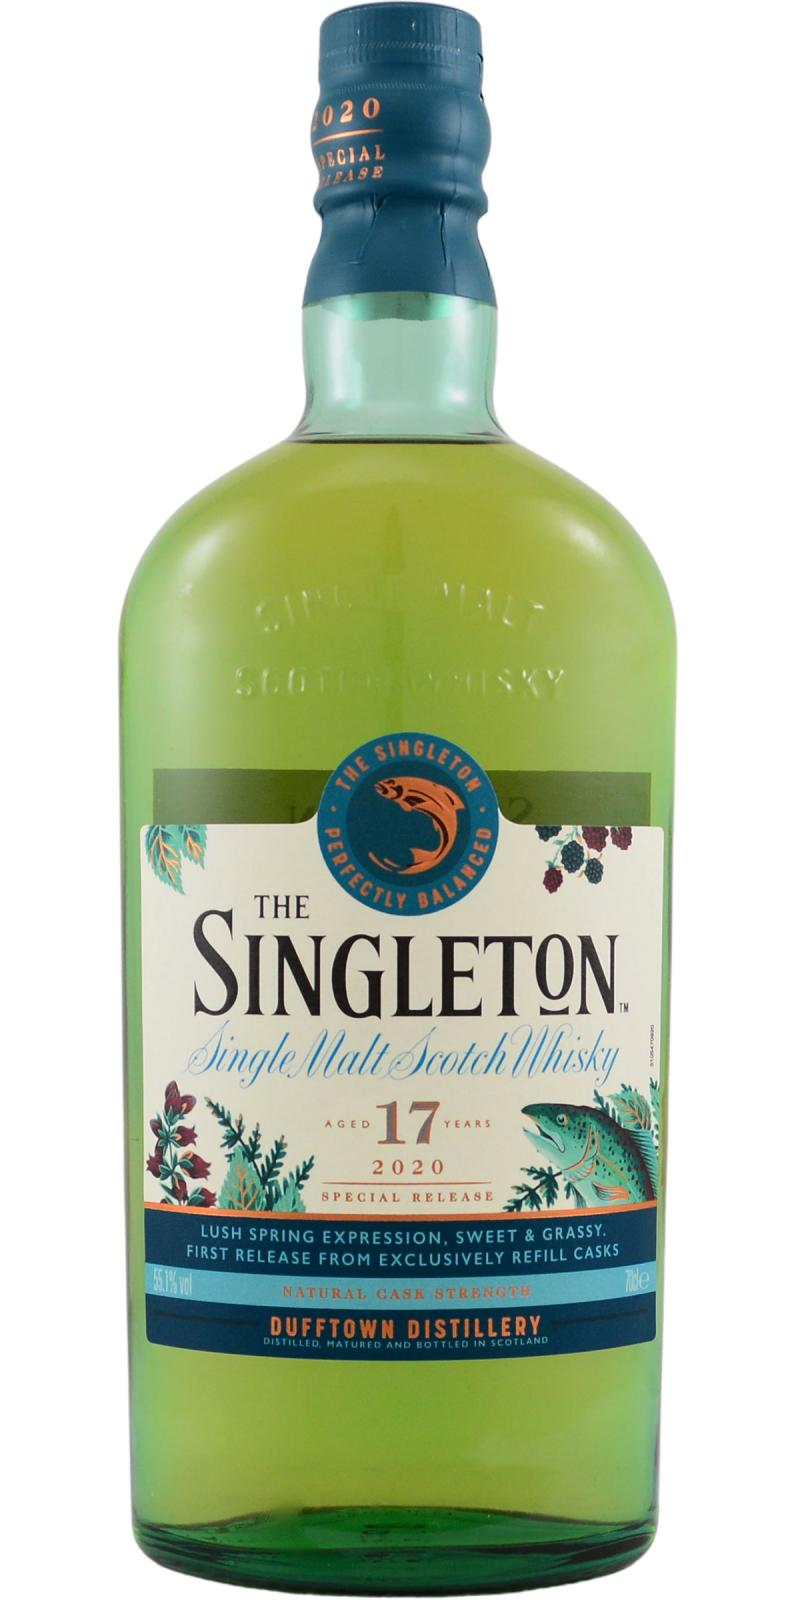 The Singleton of Dufftown 17-year-old